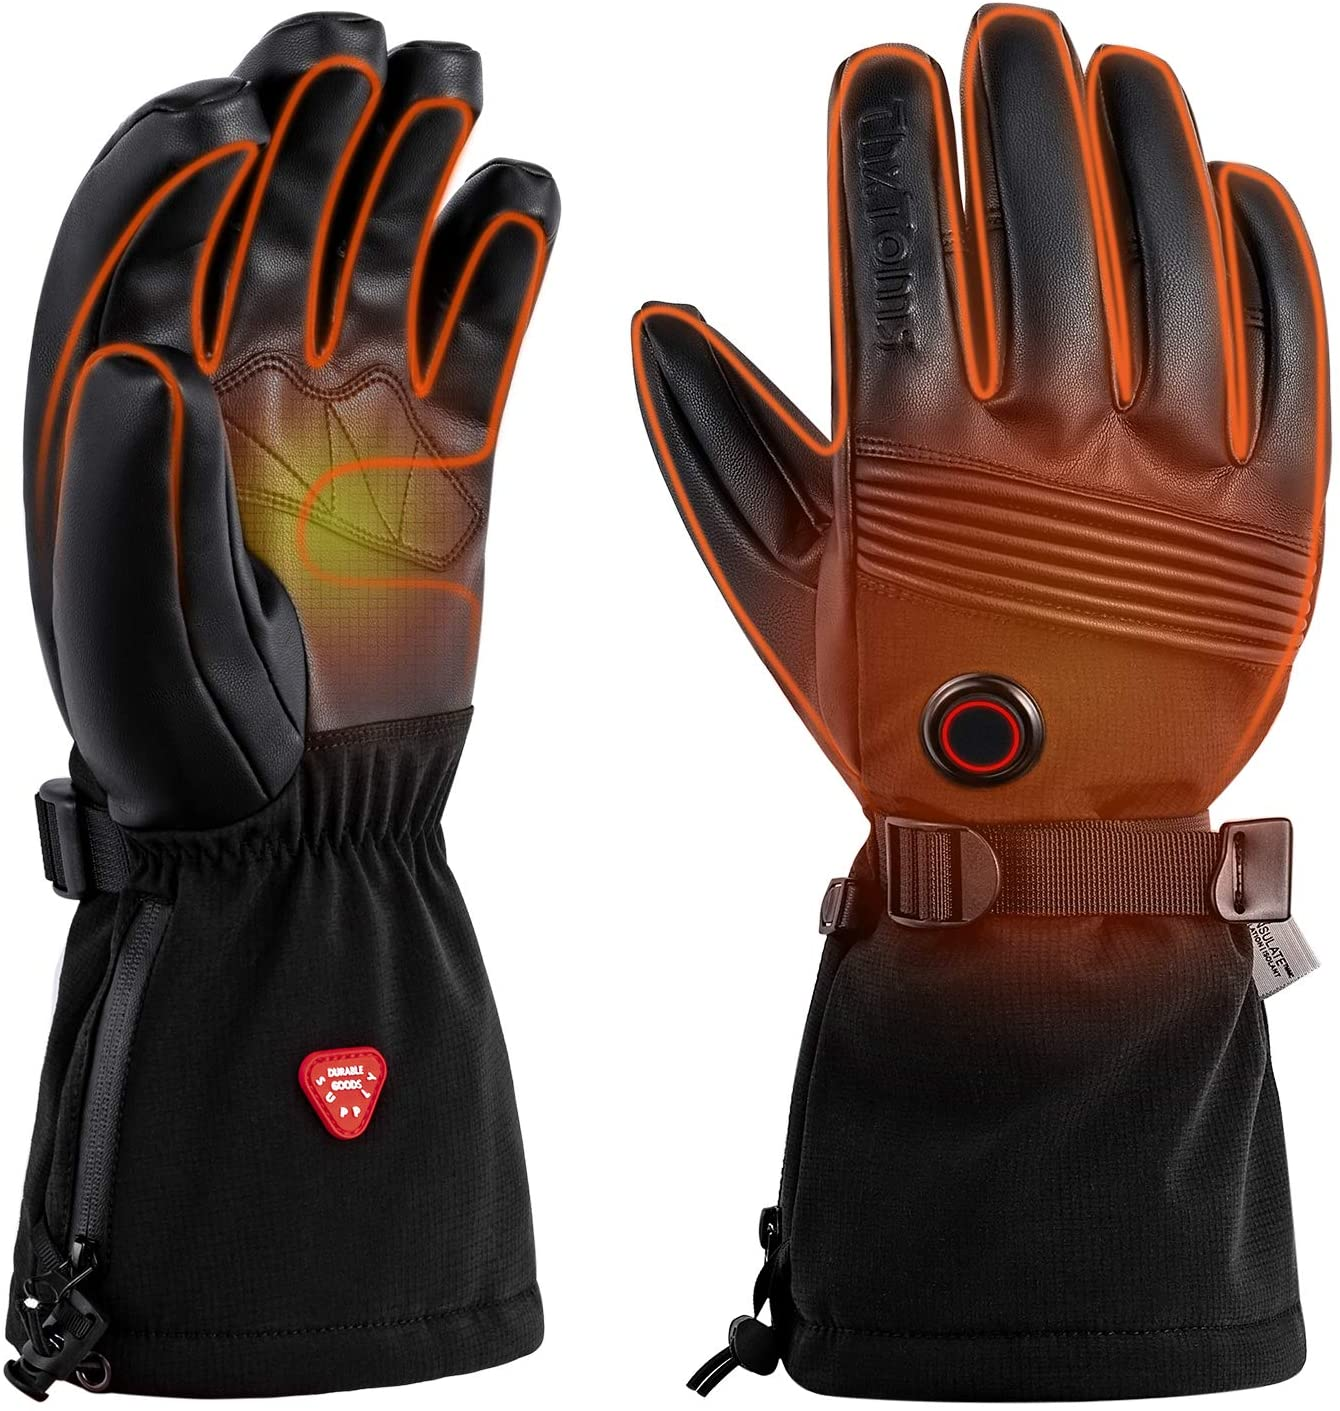 ThxToms Heated Gloves with Rechargeable Battery, Waterproof Breathable Winter Gloves Men & Women, Touchscreen Gloves for Motorcycle, Ski, Hunting, Riding